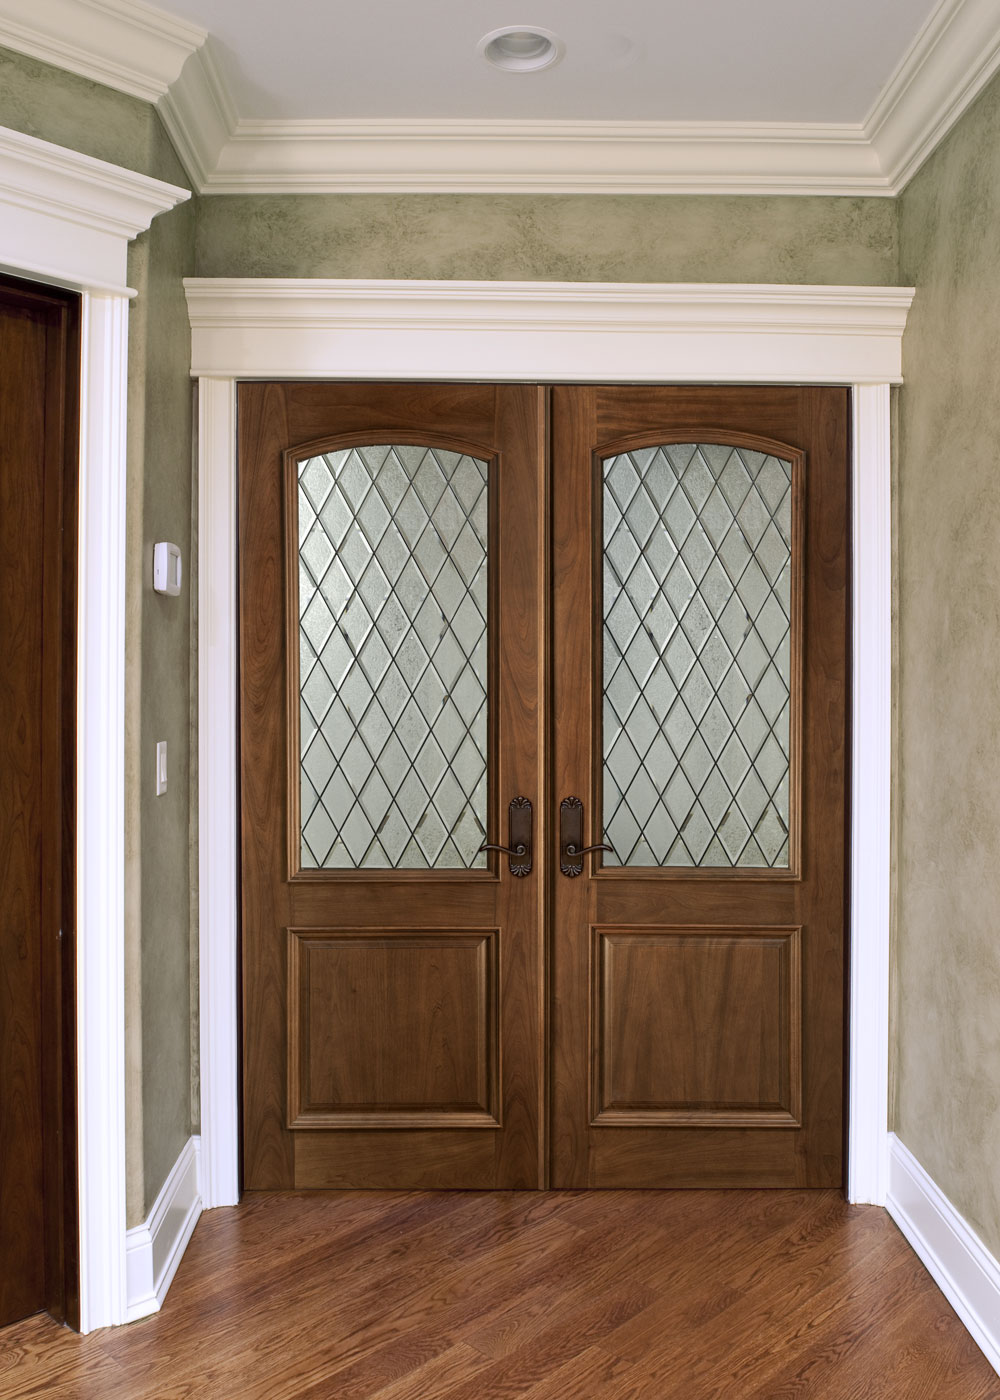 10 benefits of double door designs interior exterior ideas for Interior entrance doors